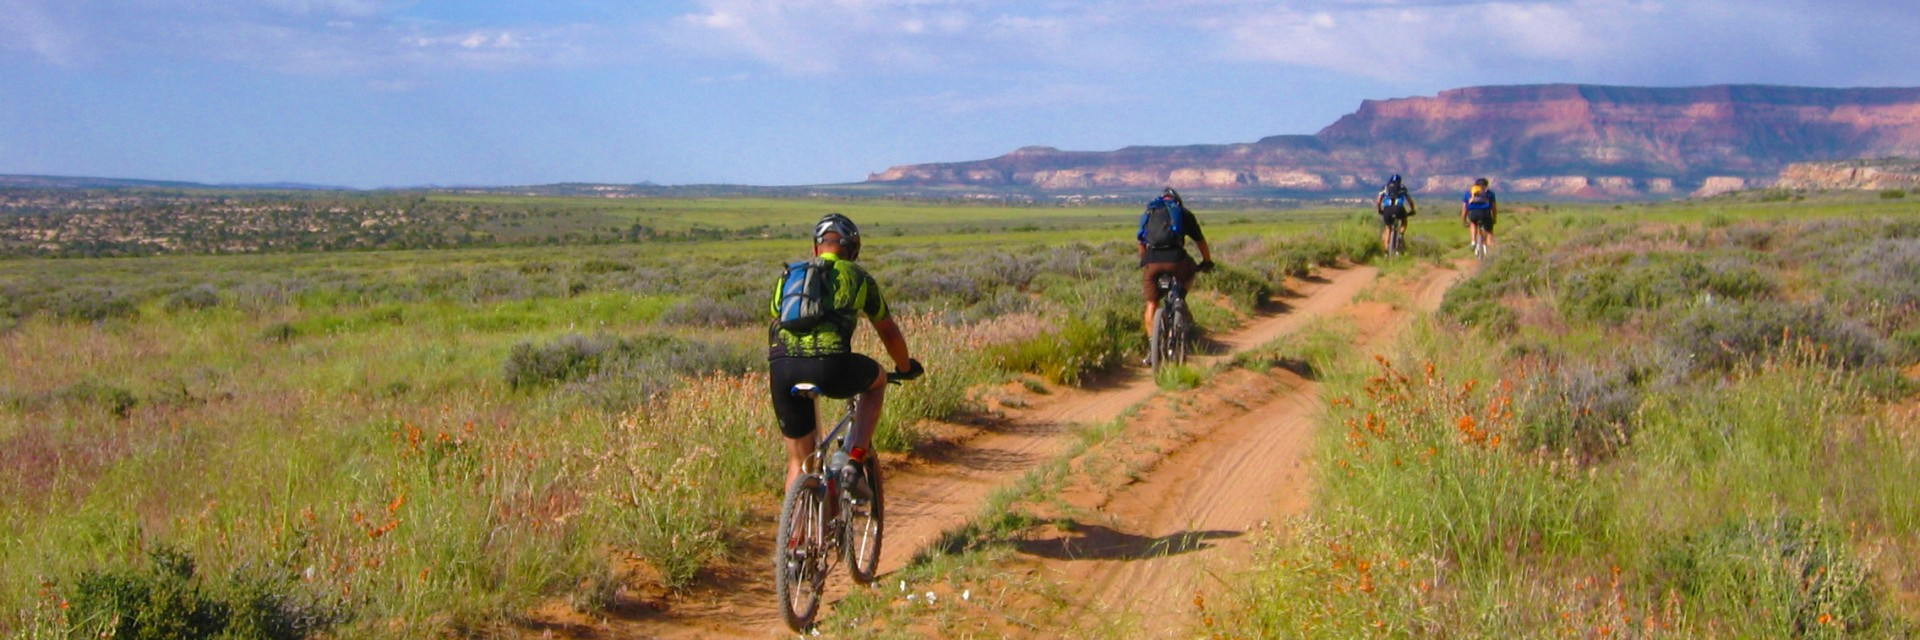 Mountain bikers head toward Indian Creek on the Lockhart Basin Road during a guided Needles to Moab tour